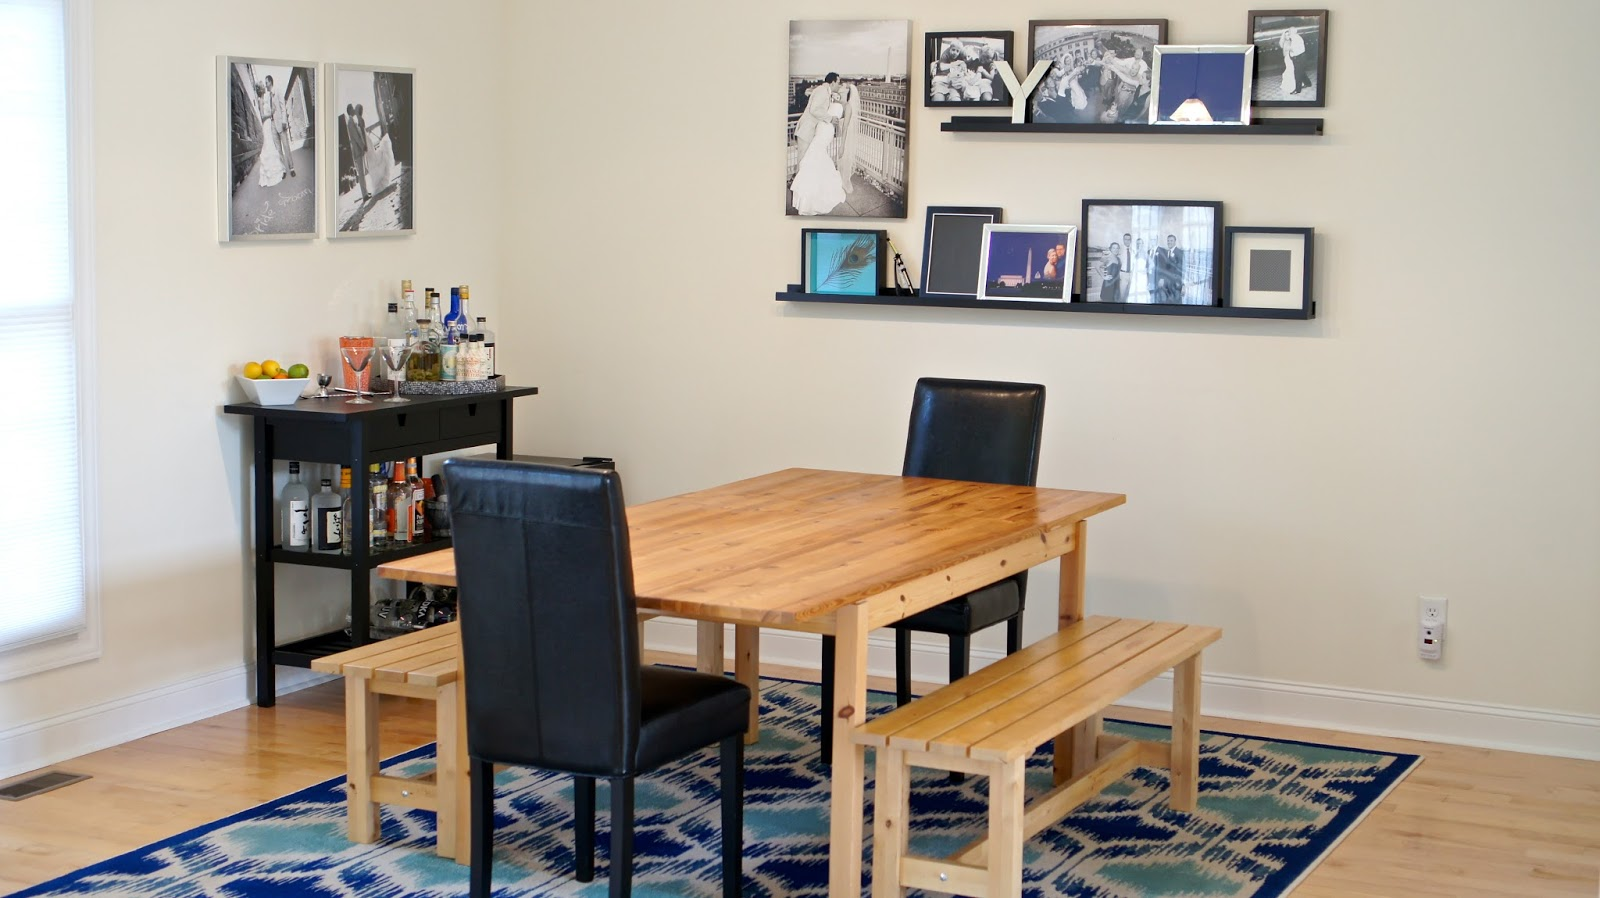 Ikea dining room 2013 - Updating The Ikea Norden Bar Dining Table